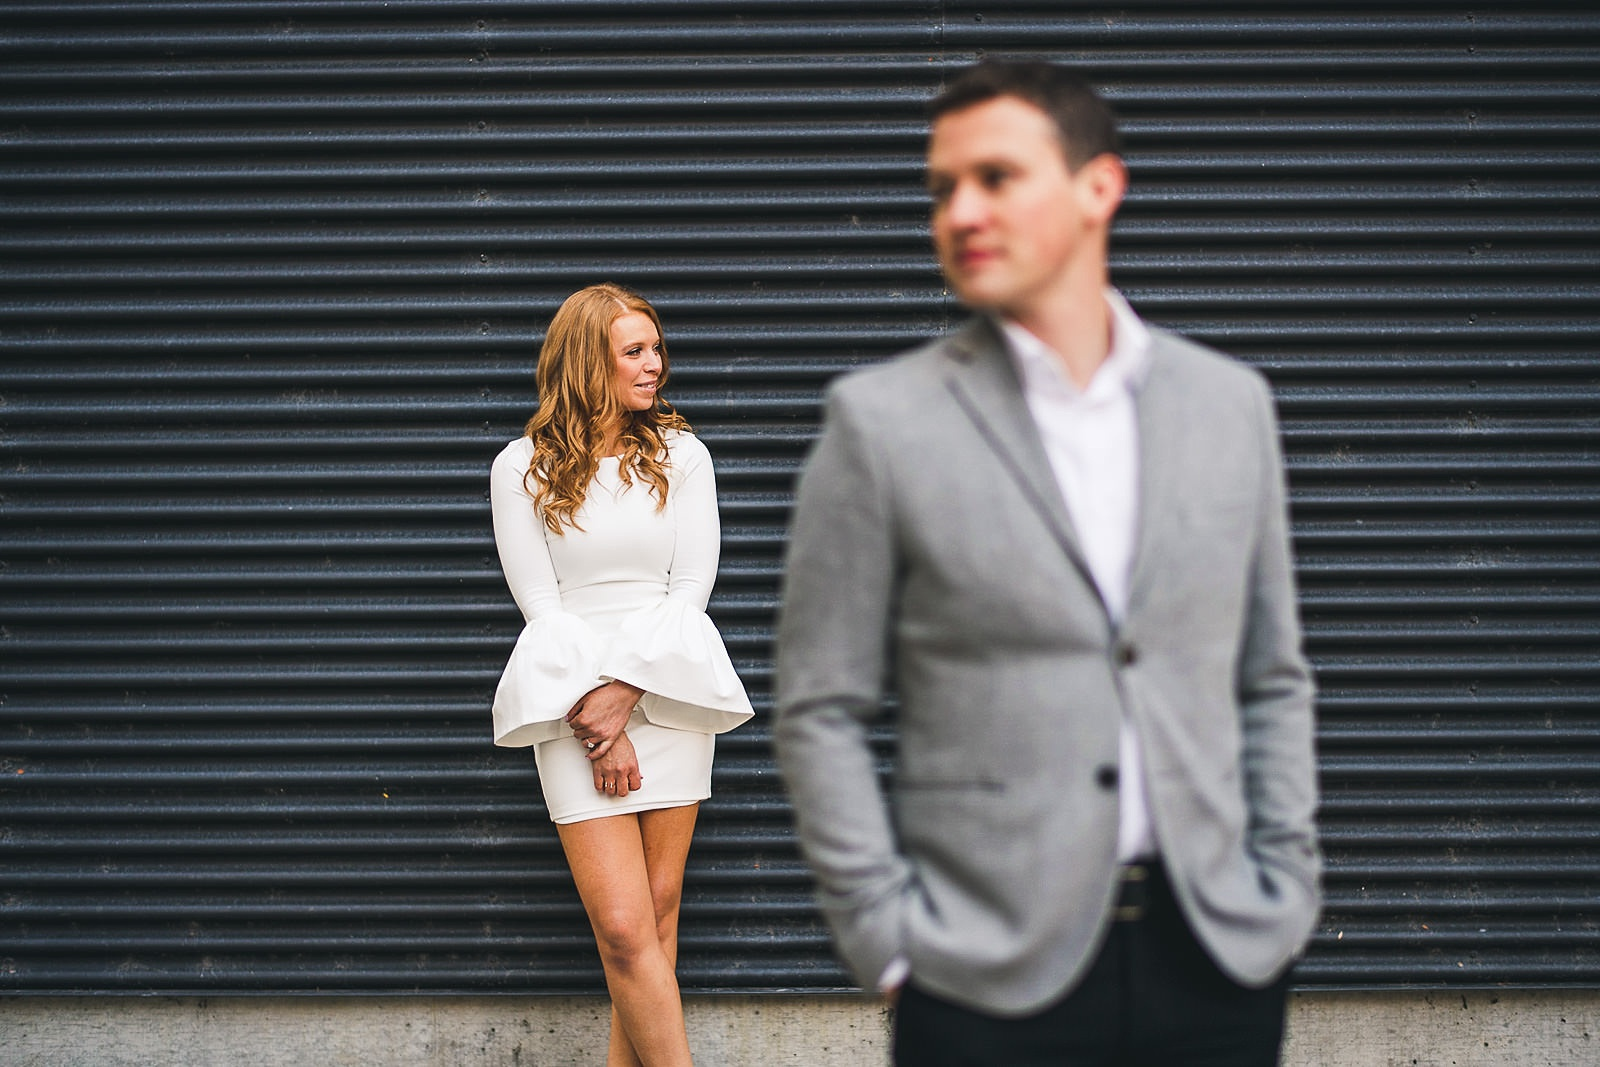 22 chicago locaitons for engagement photos - Rooftop Chicago Engagement Session // Aubyn + Danny